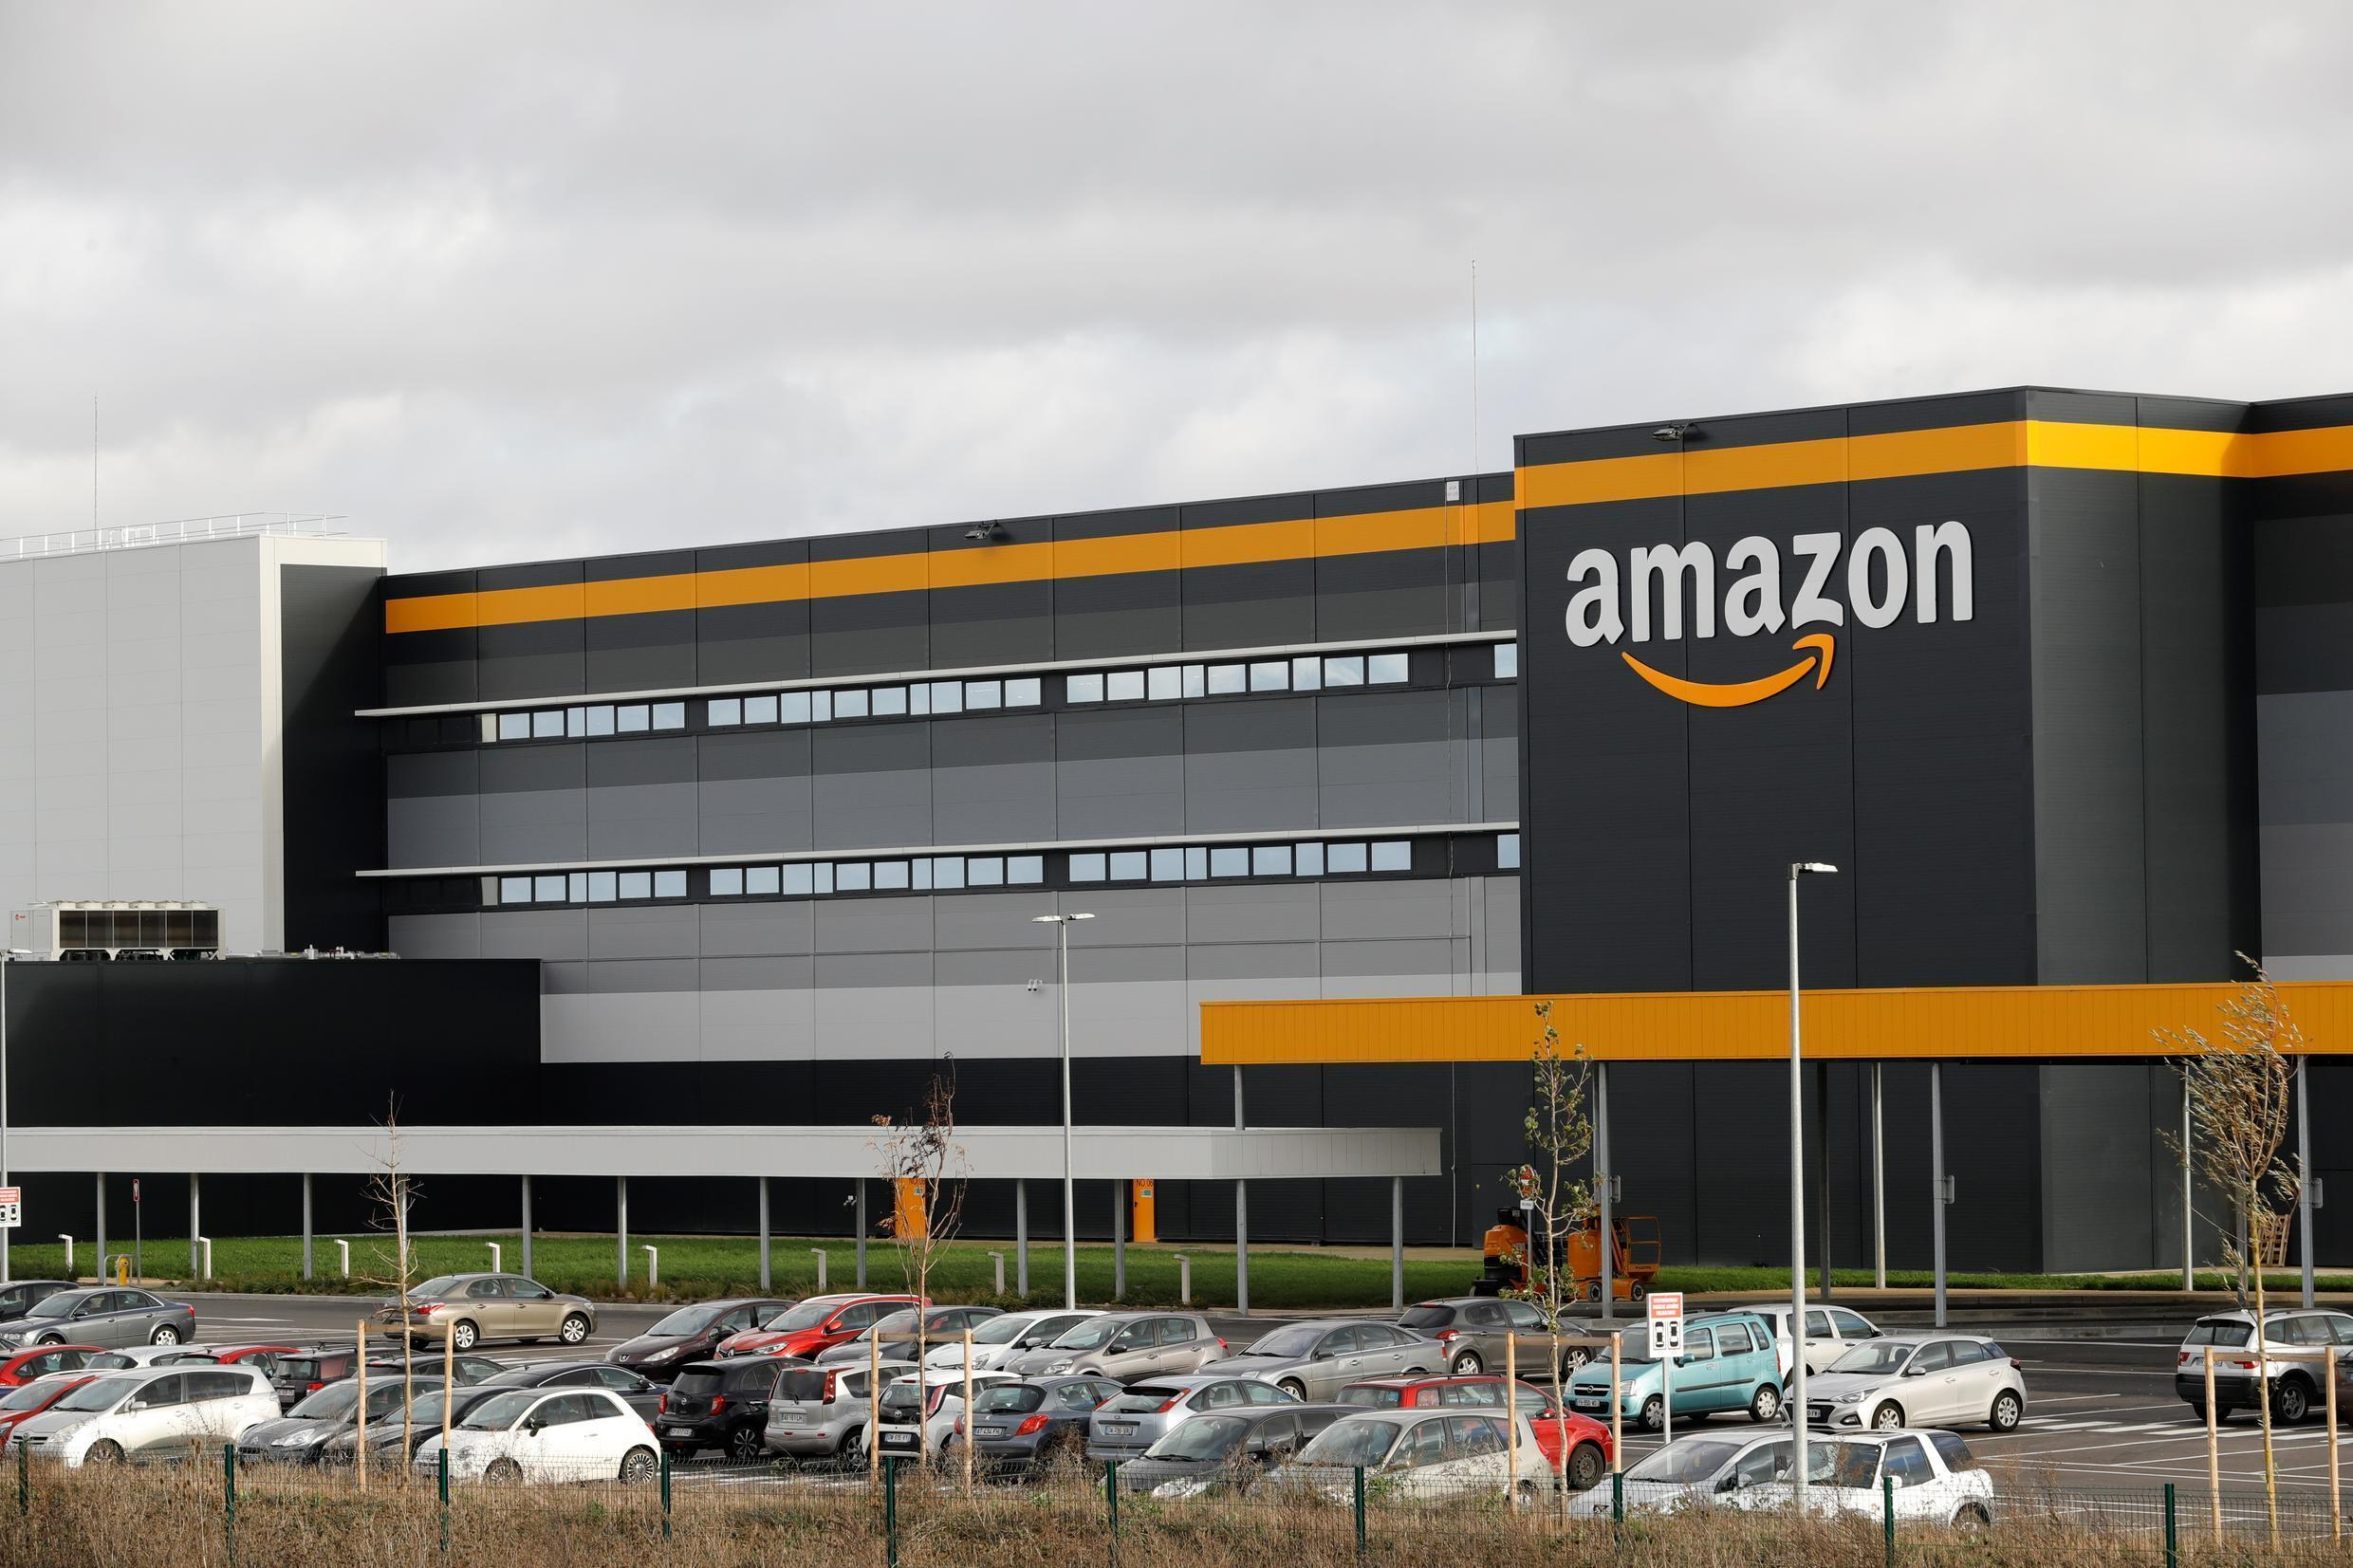 Amazon Frances says it does not know when it will reopen its distribution sites after a court ruled it must review health rules to protect workers during the coronavirus crisis while restricting deliveries to essential goods only